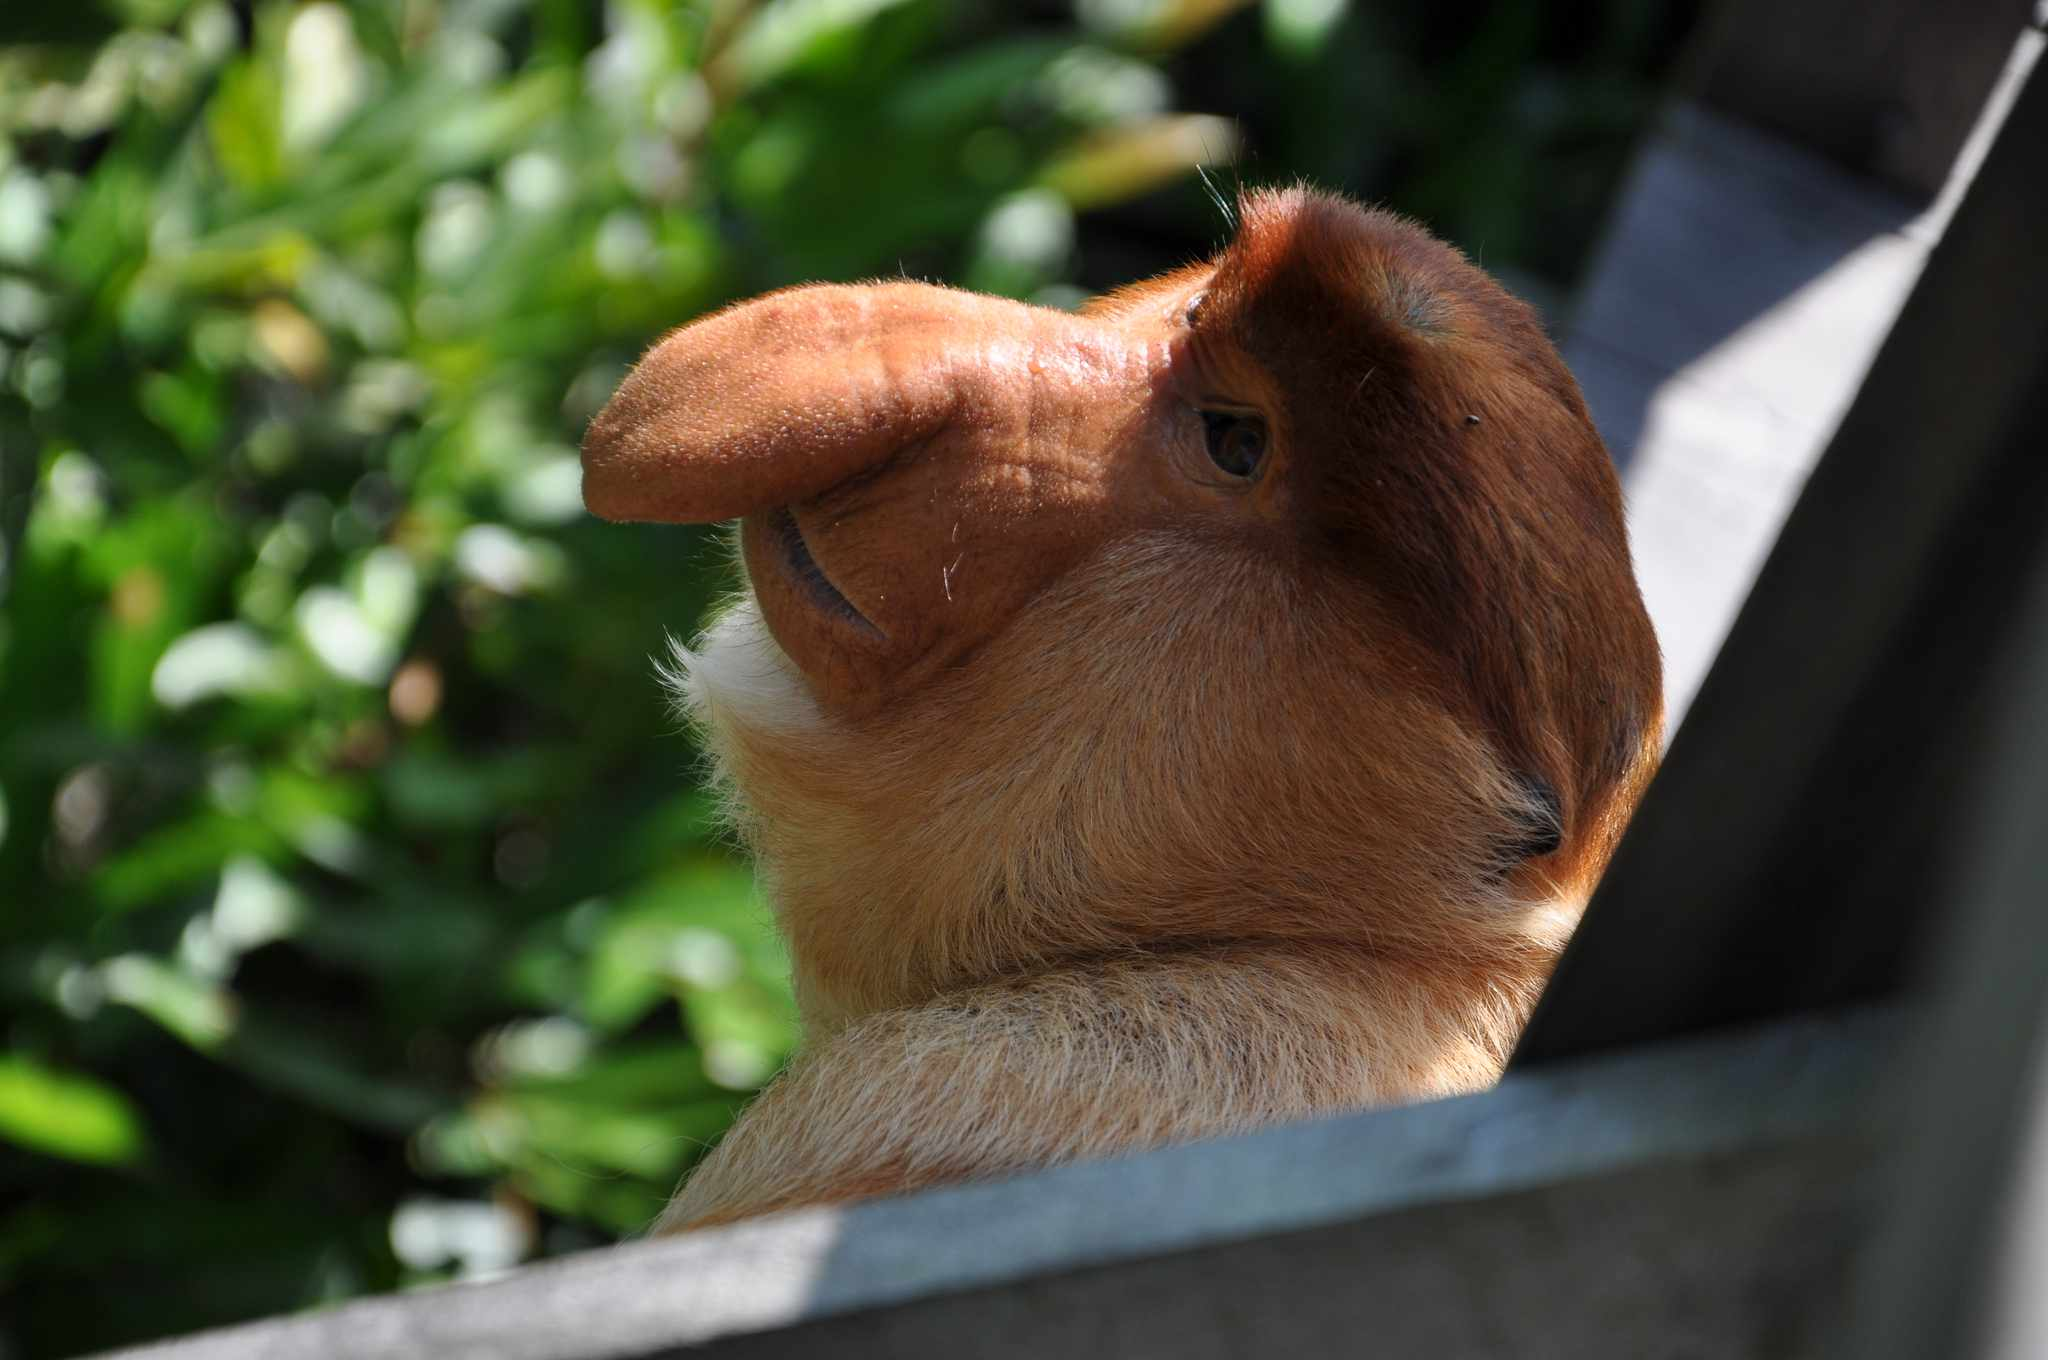 13 of the Ugliest Animals on the Planet